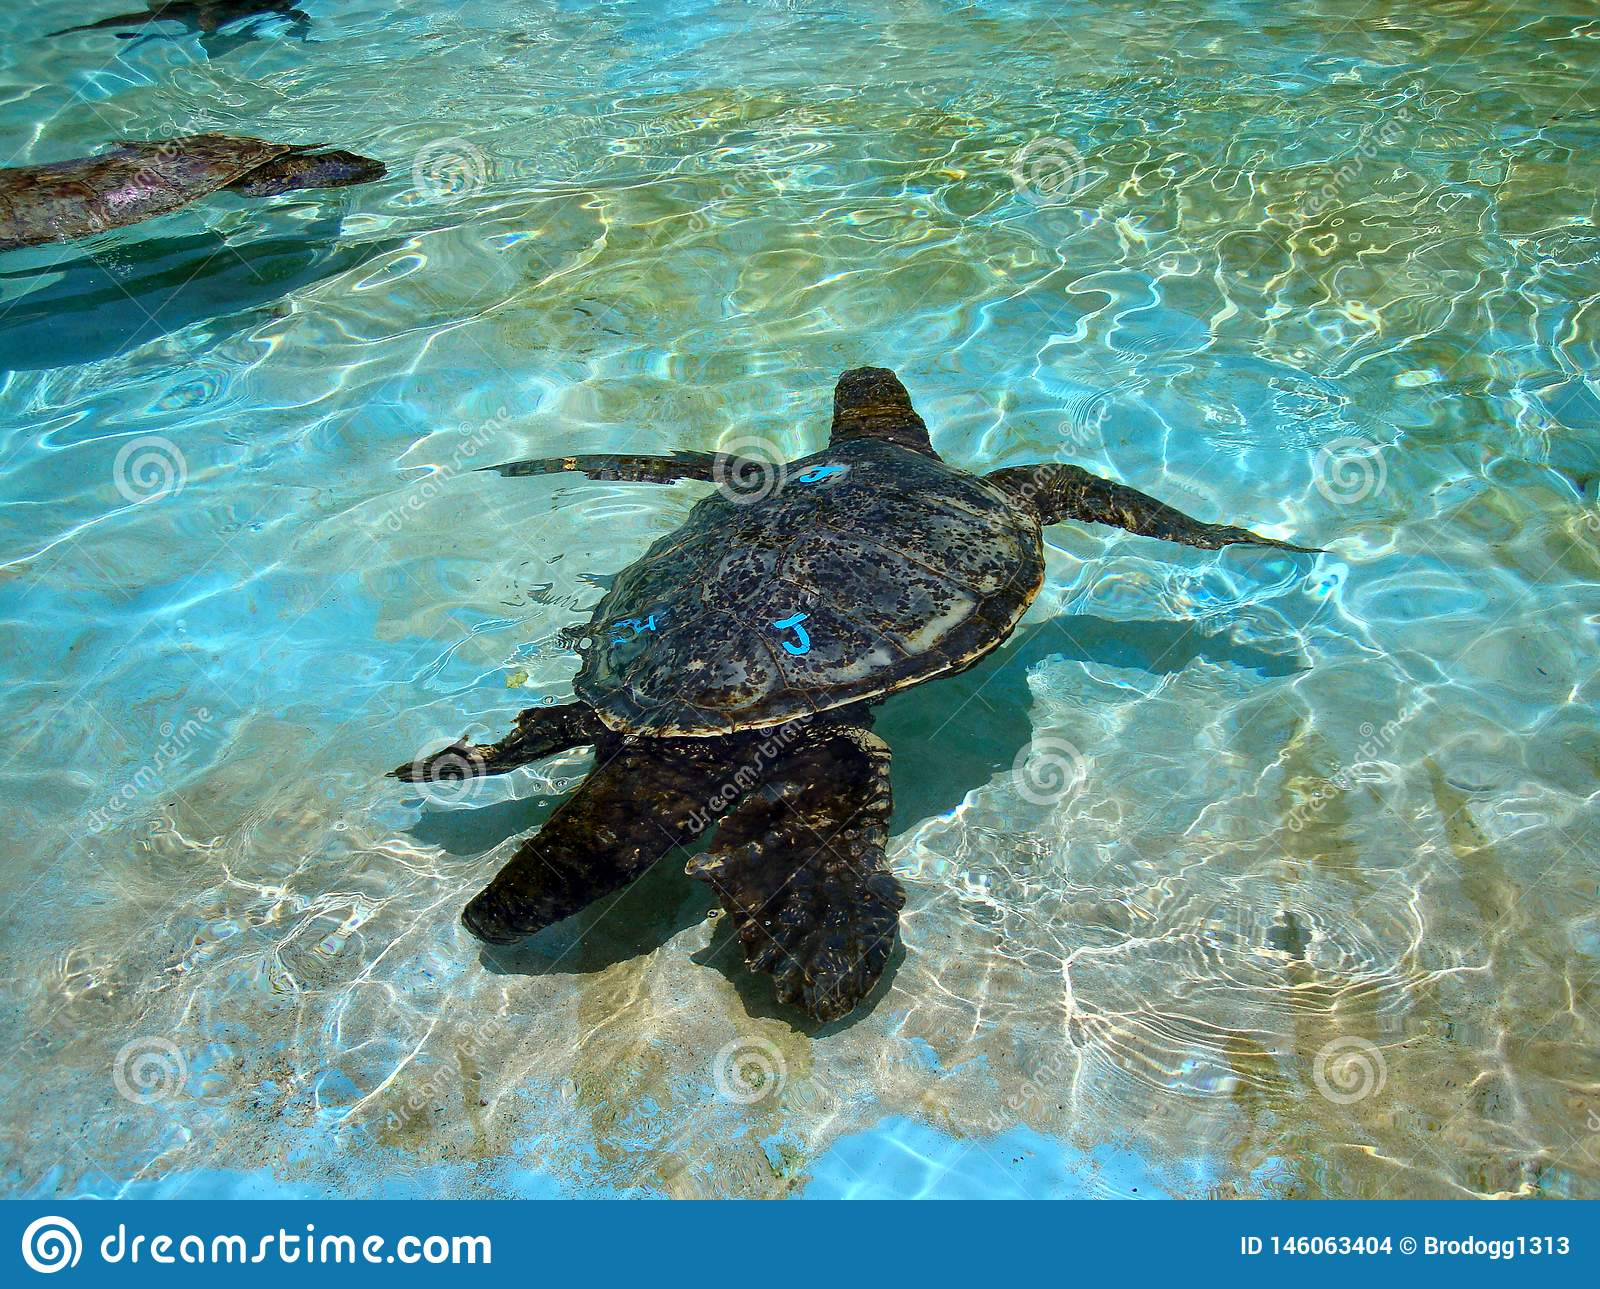 Captive Hawaiian Sea Turtles Swim Under The Shallow Water